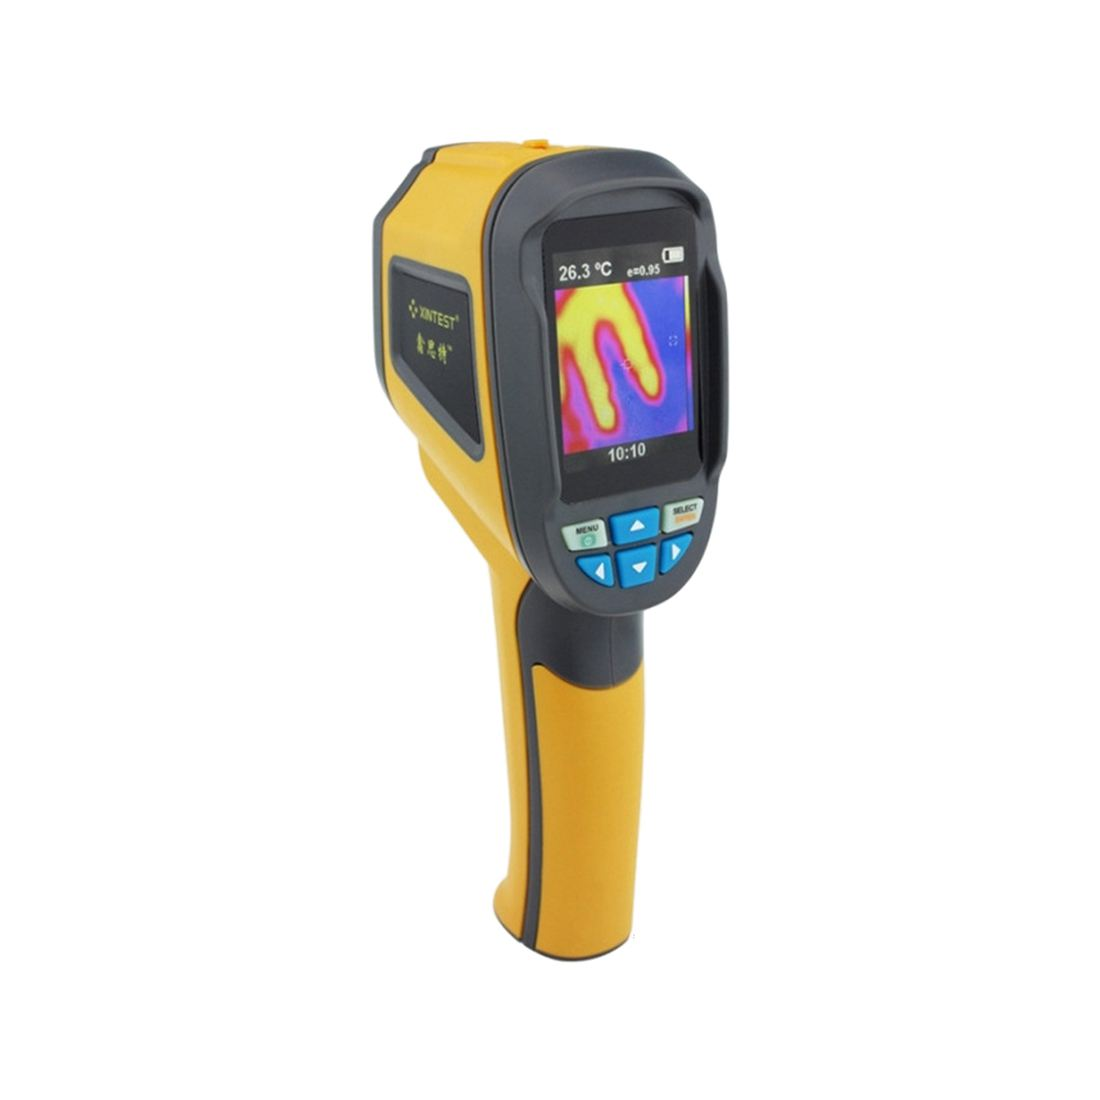 Xintest Handheld Thermal Imaging Camera Infrared